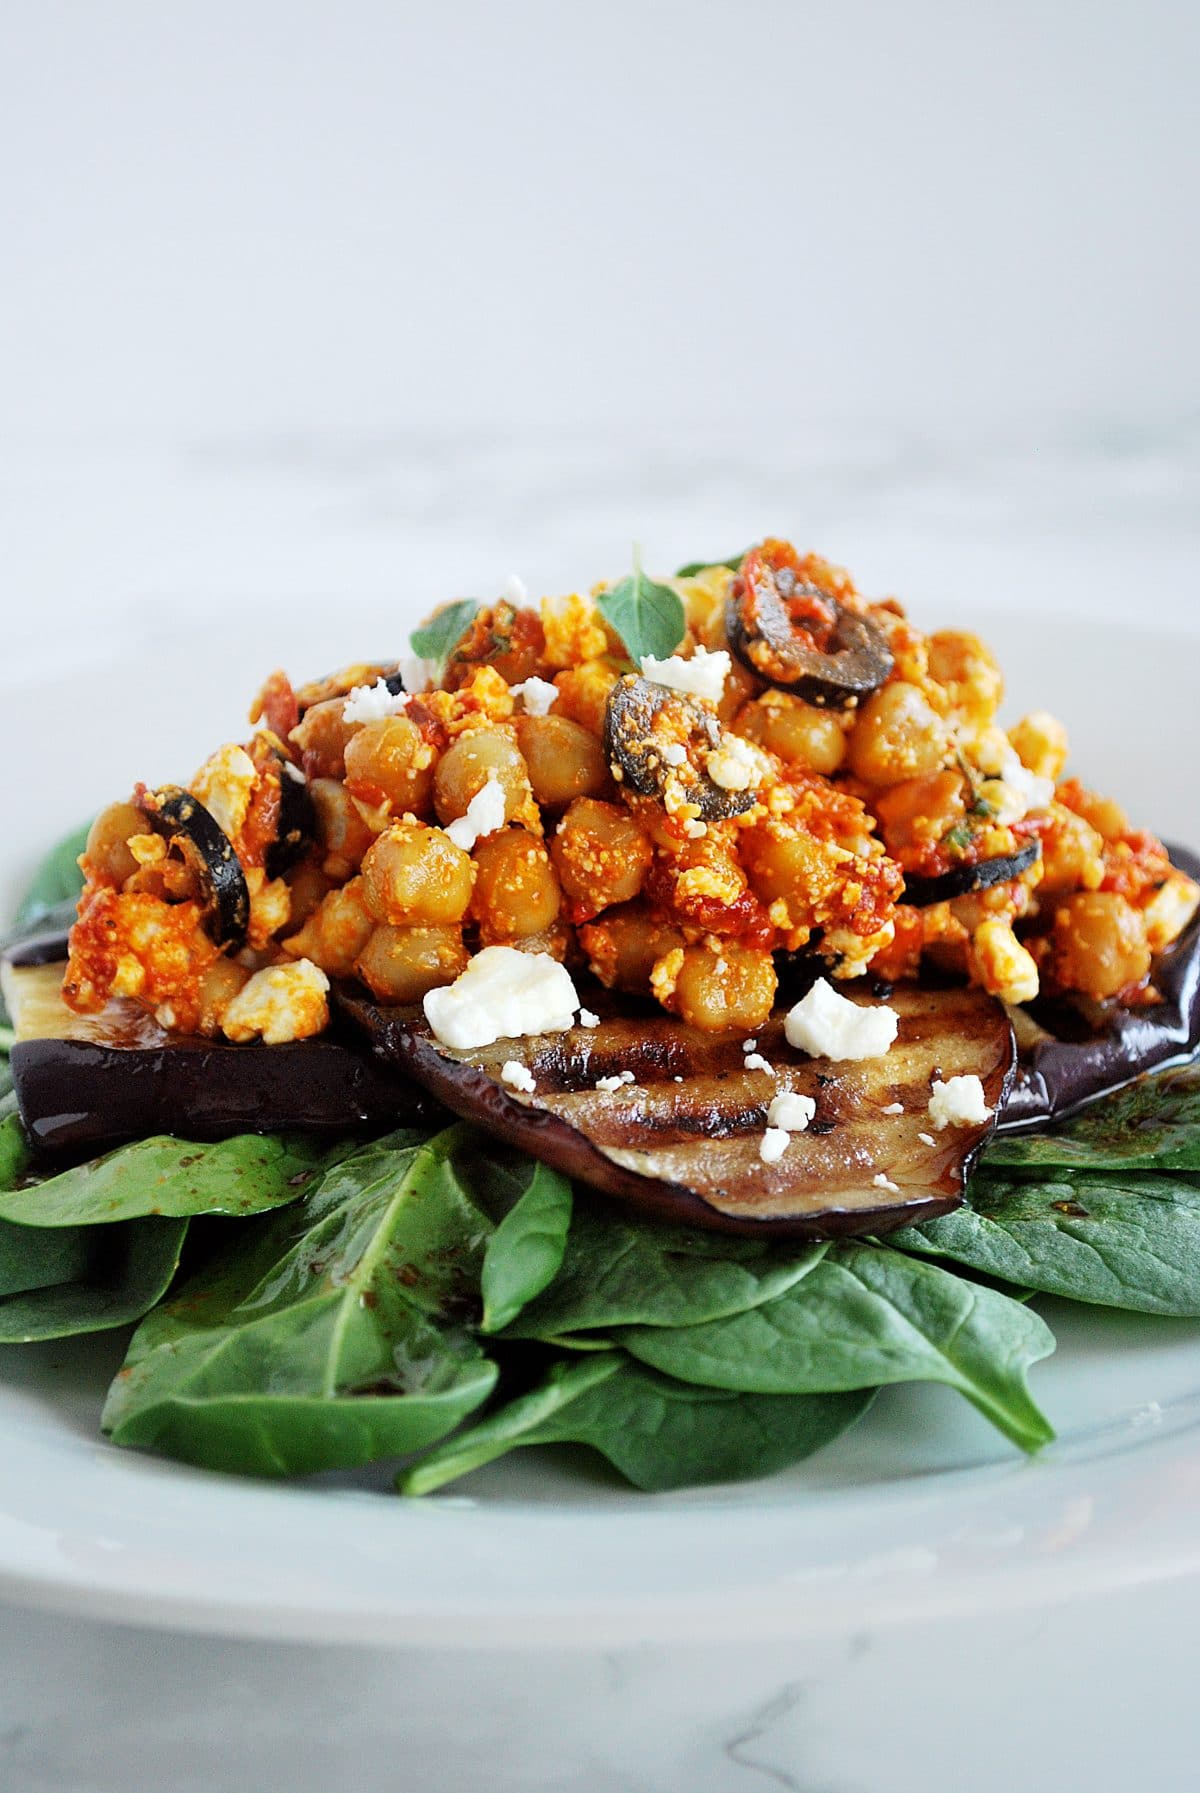 A side view of a plate of chickpea salad with grilled eggplant.